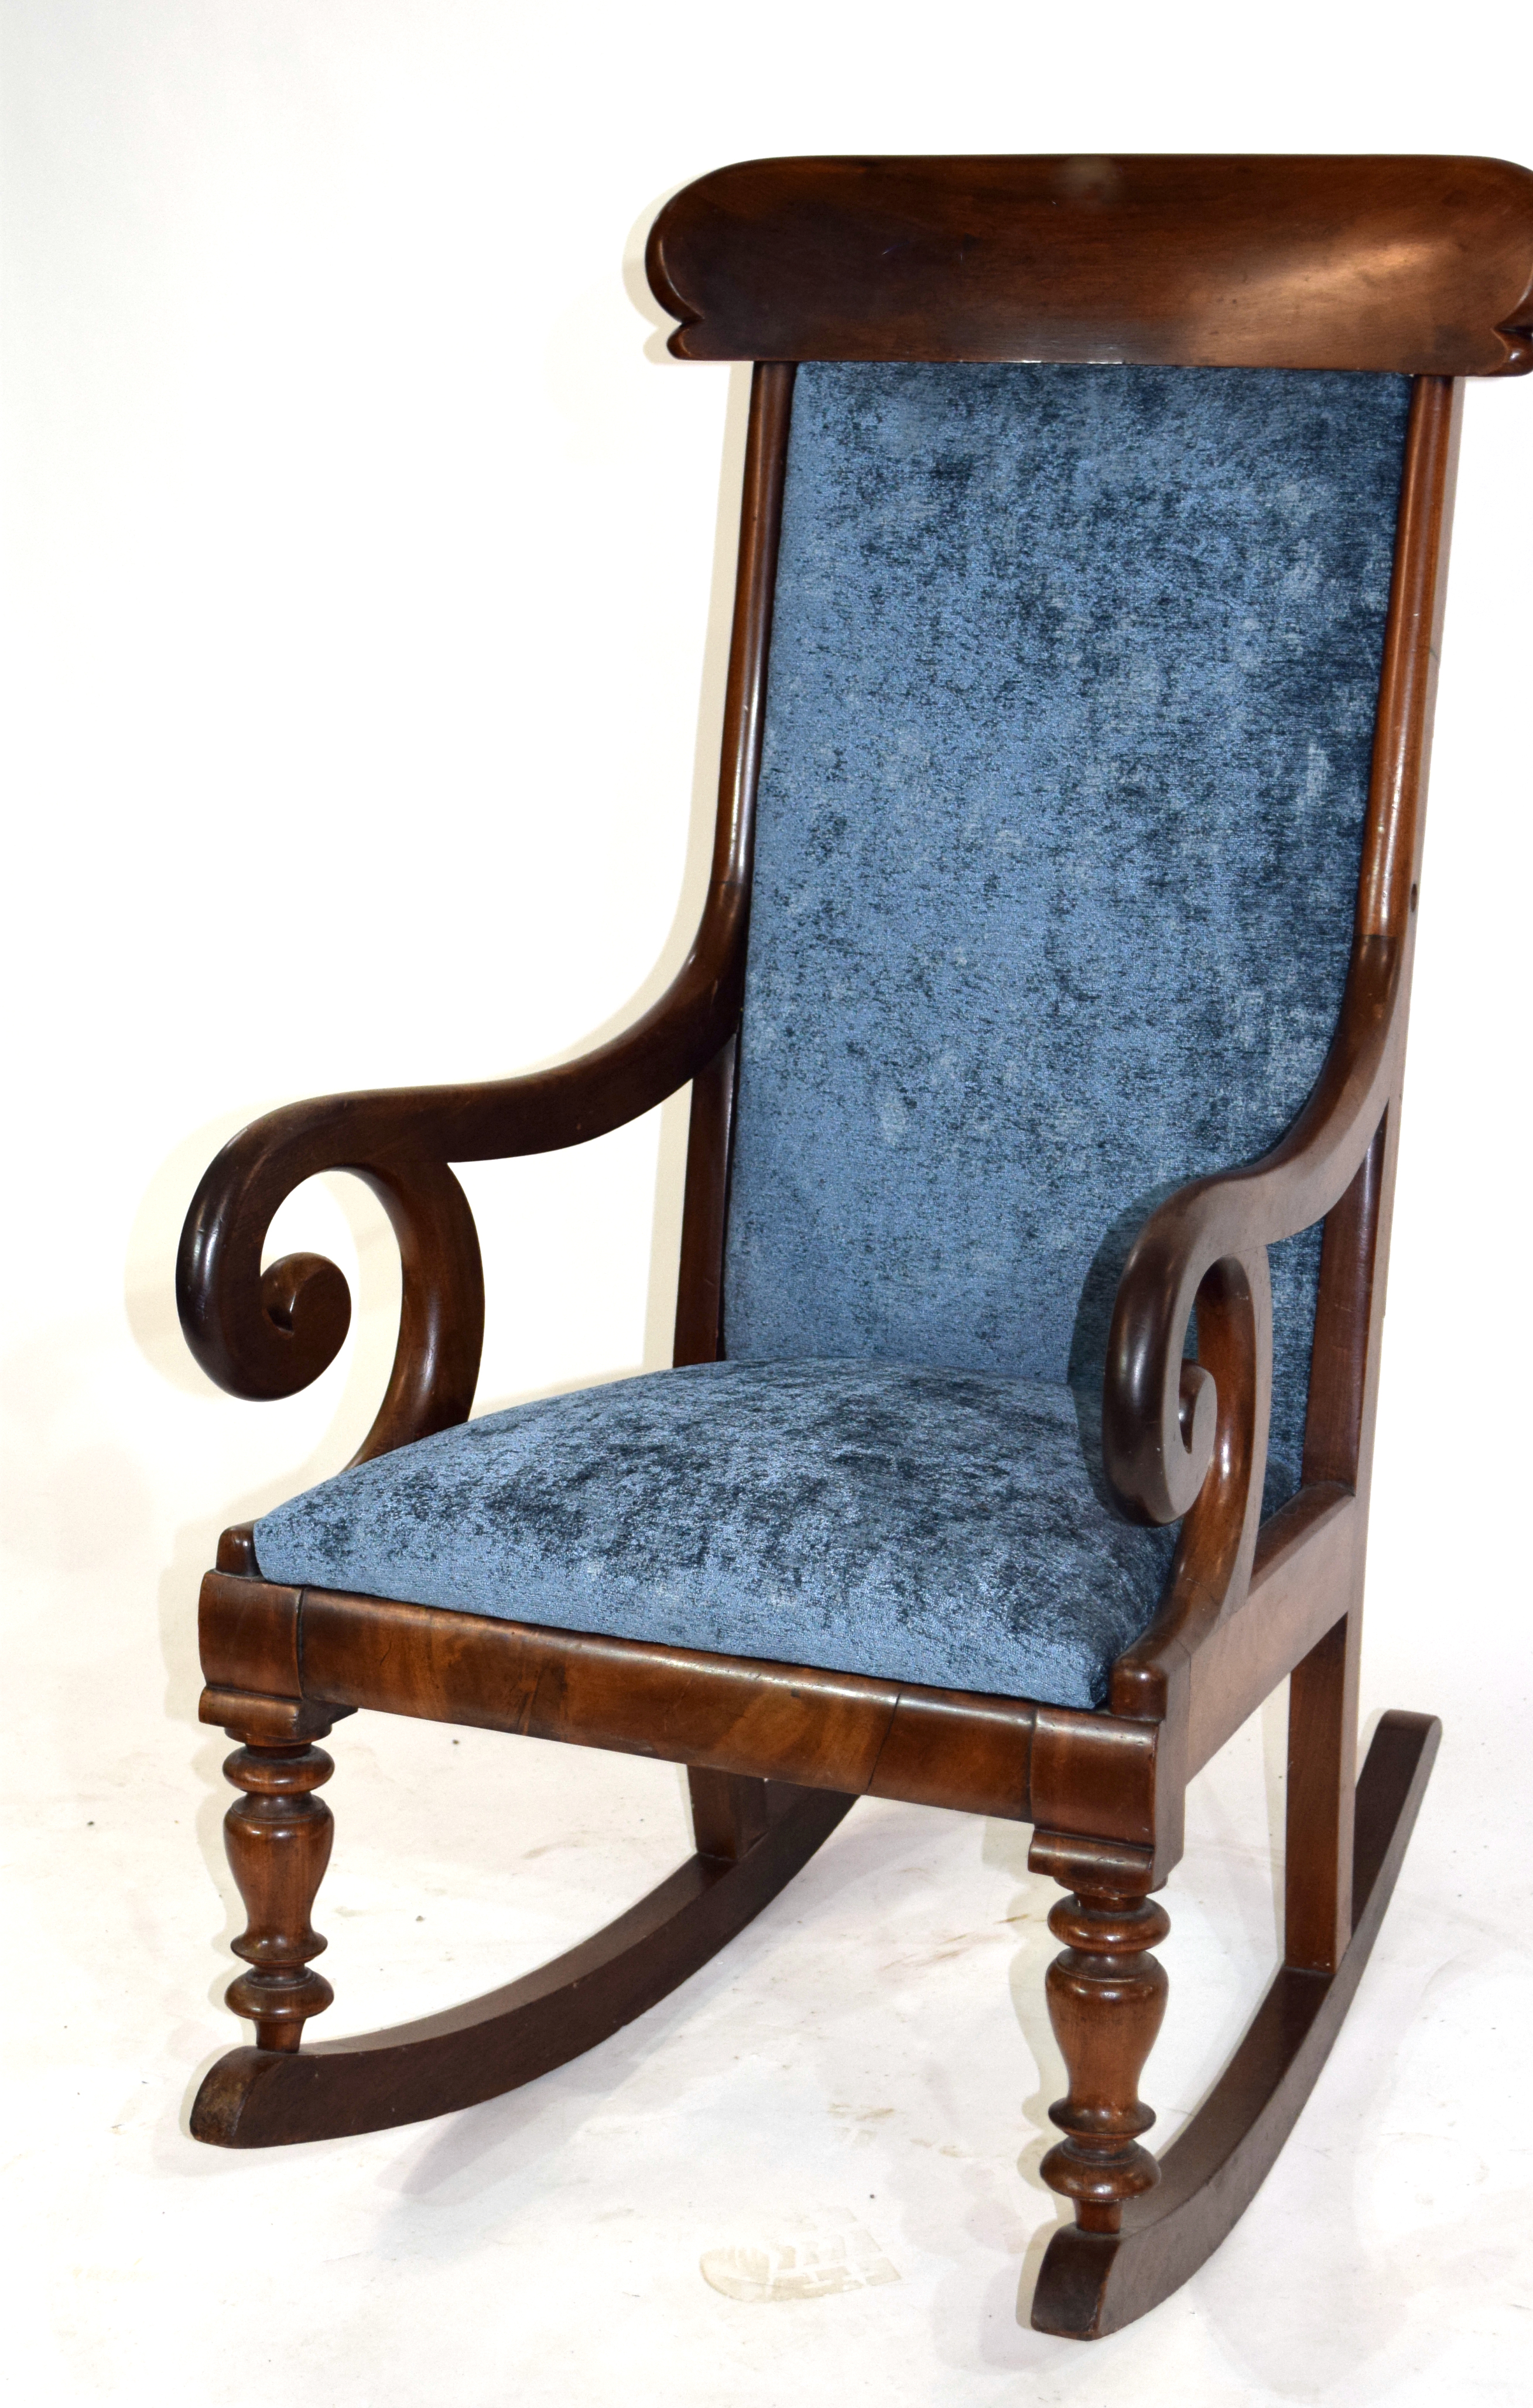 A mahogany framed bar back rocking chair upholstered in blue fabric 104cm in Height Condition: - Image 2 of 2